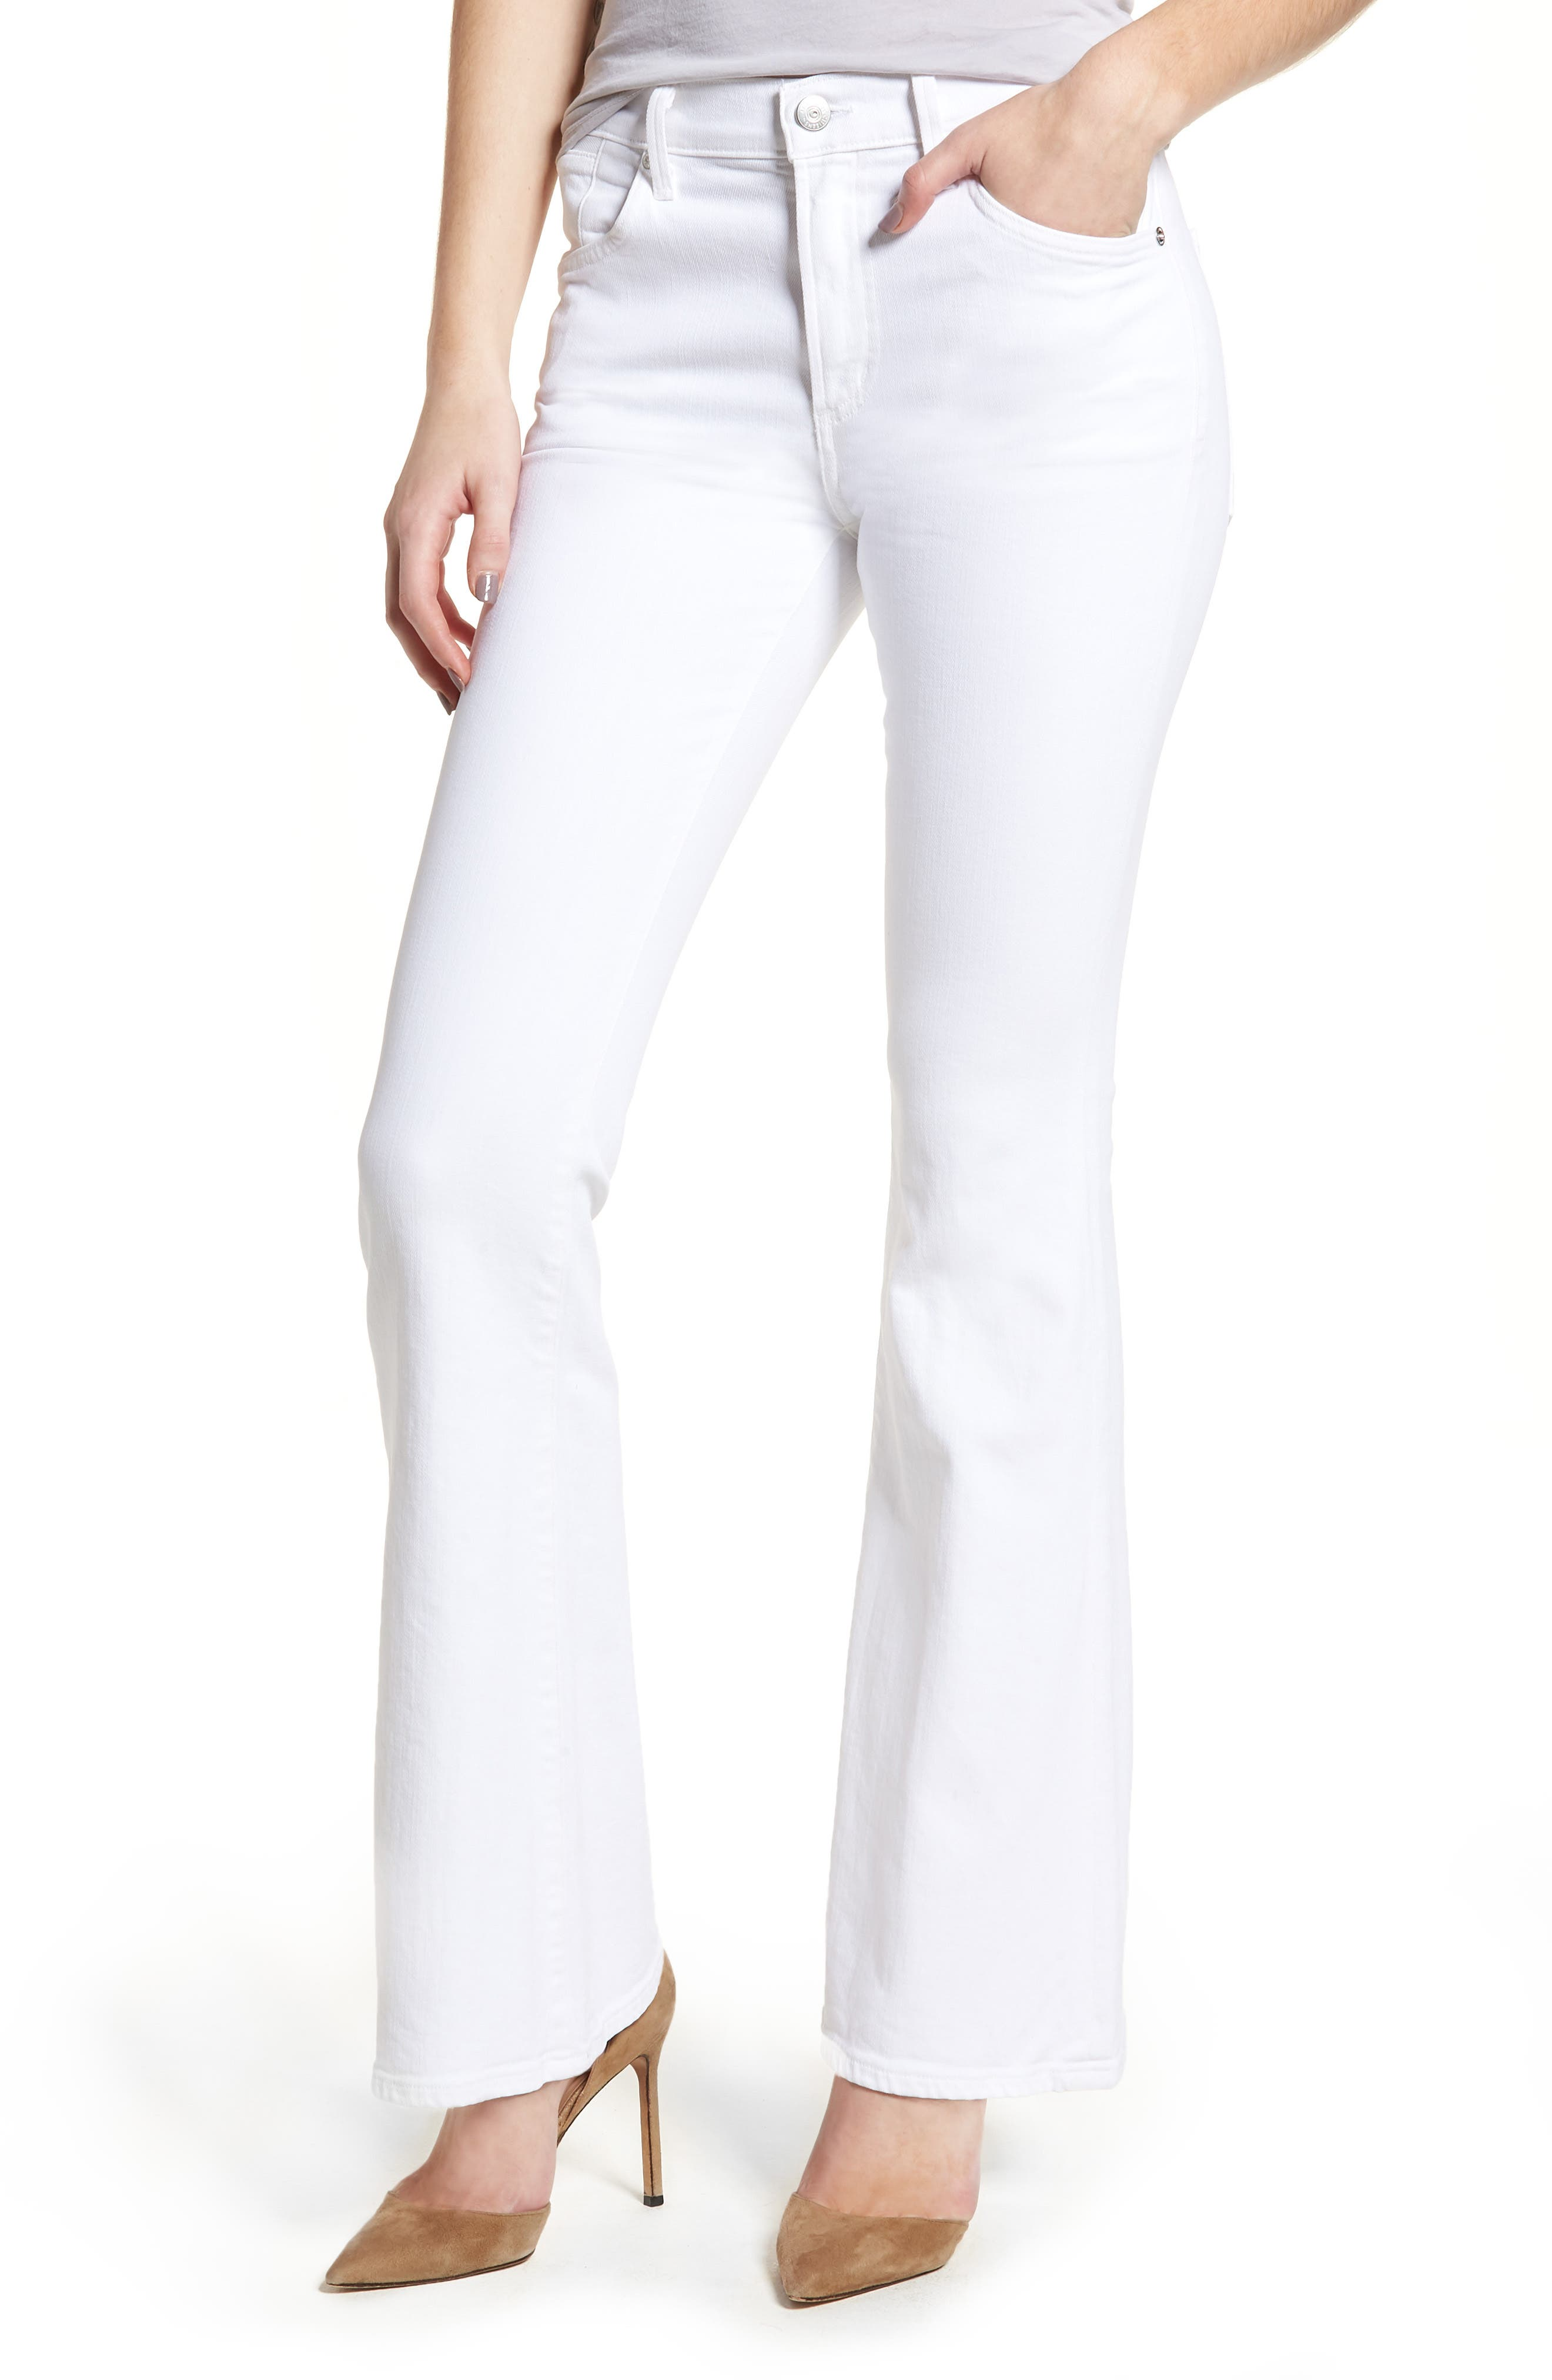 Fleetwood Flare Jeans,                         Main,                         color, 104